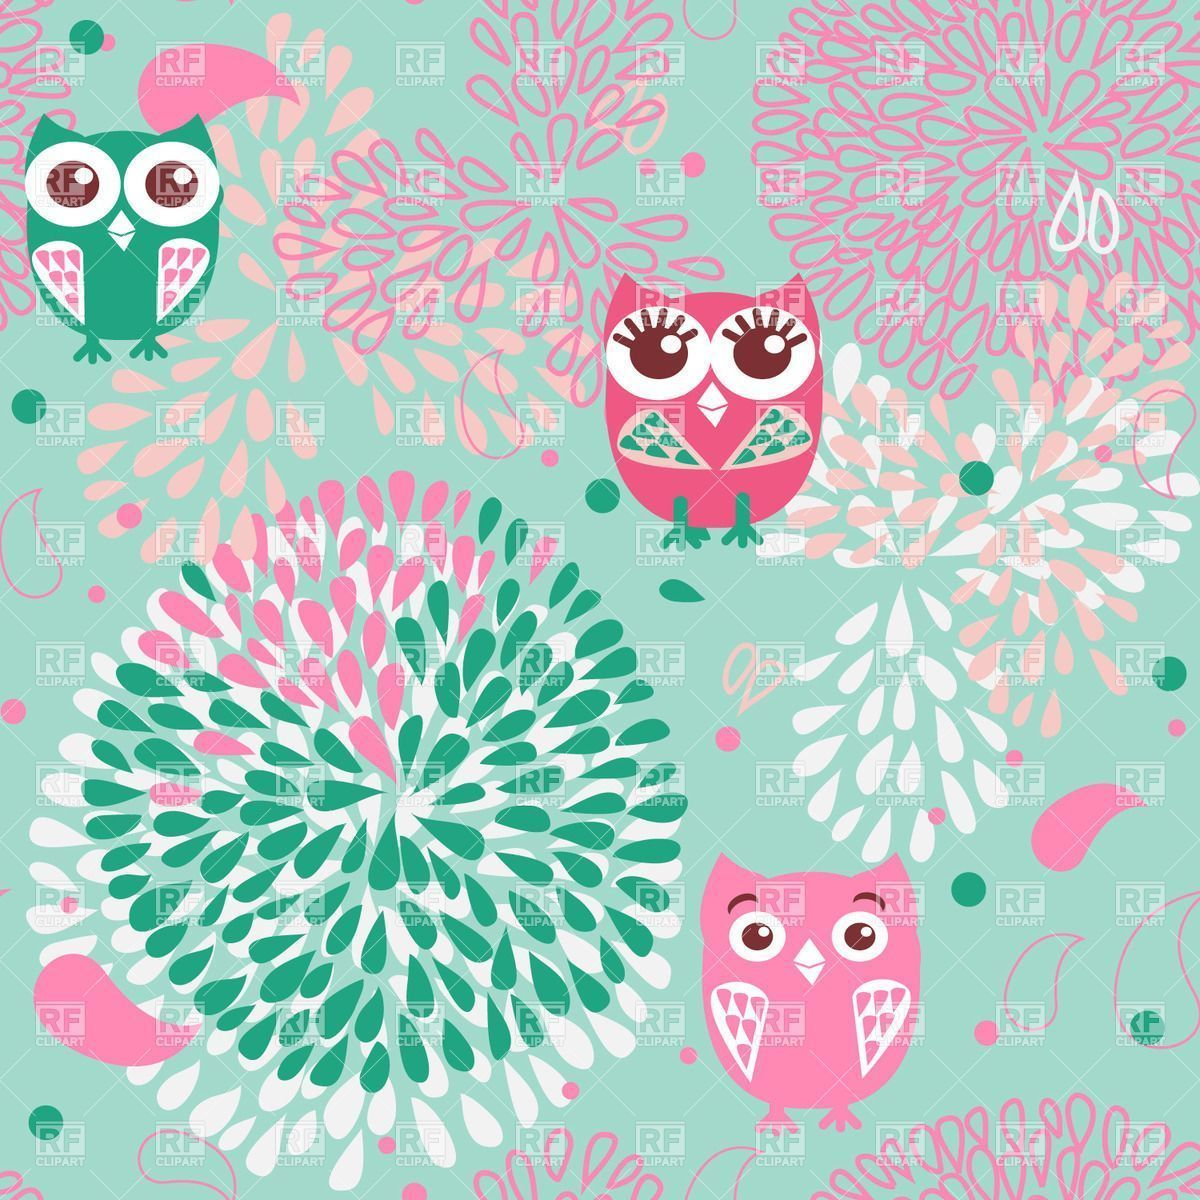 The best images about owl on pinterest owl bird cartoon the best images about owl on pinterest owl bird cartoon cute owls wallpaperlaptop voltagebd Image collections